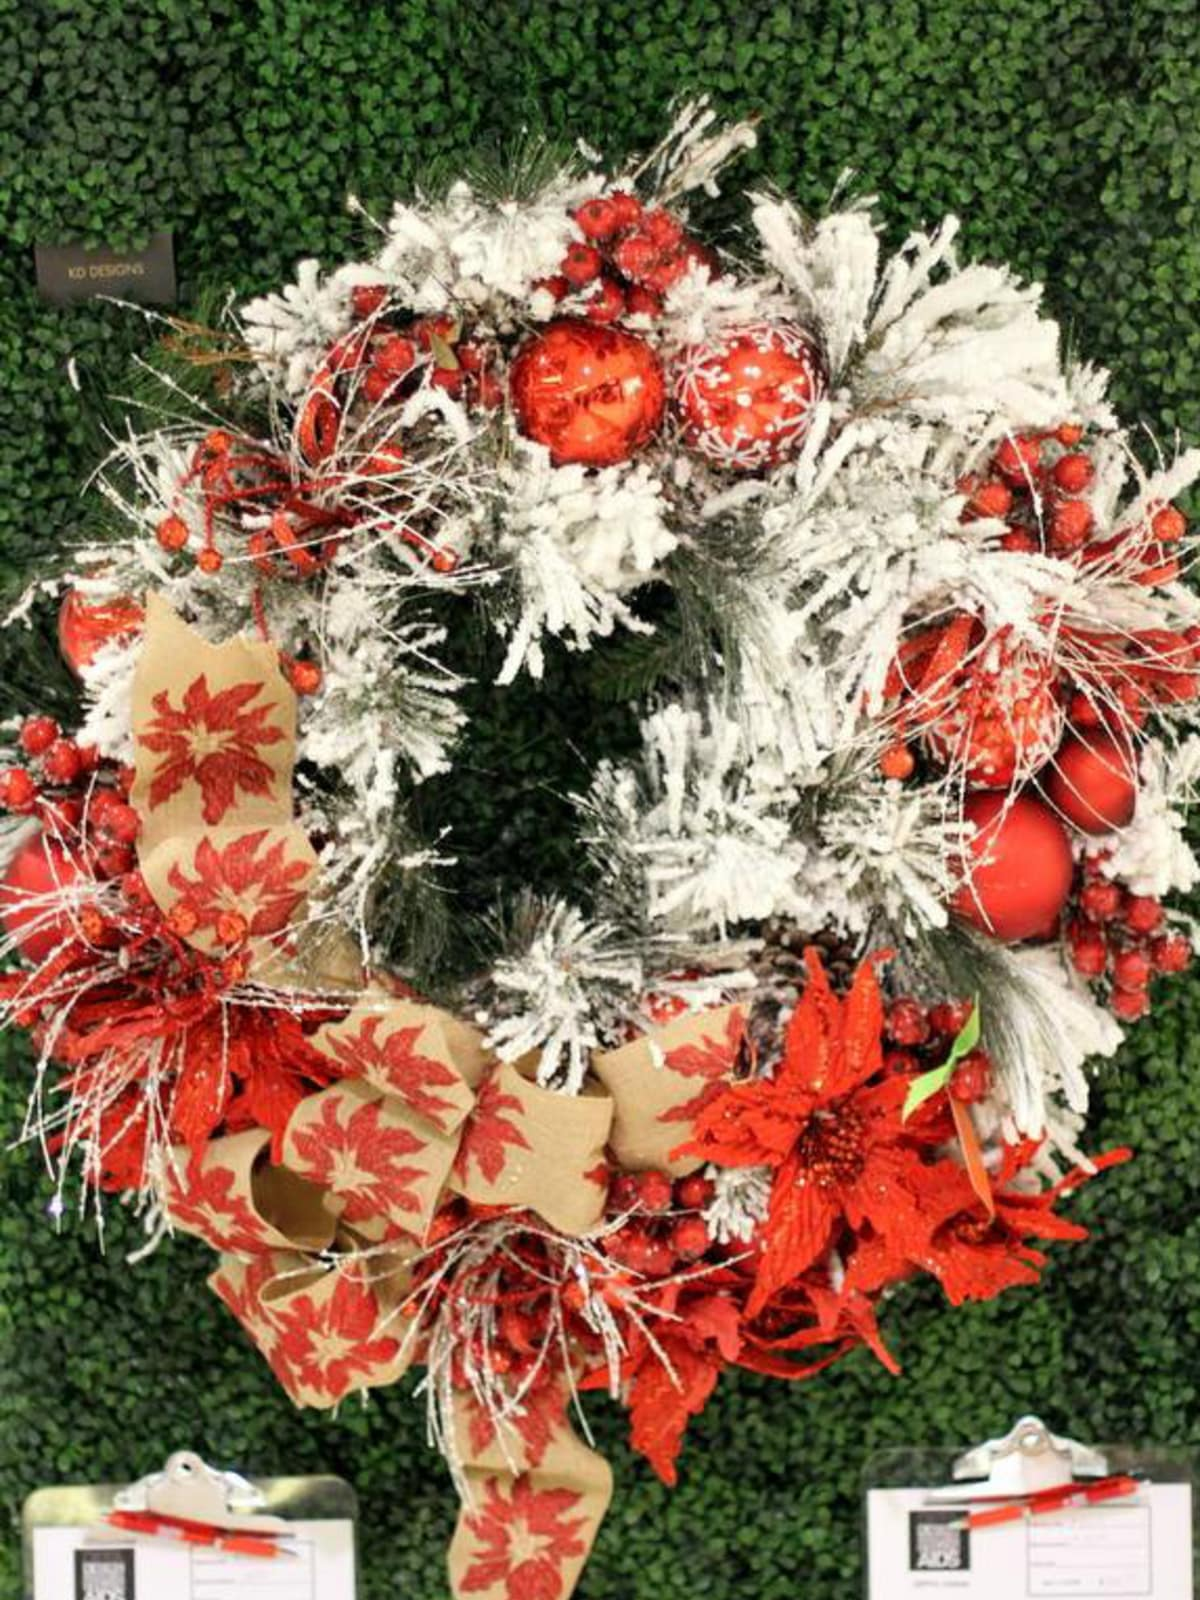 KD Designs wreath for DIFFA 2014